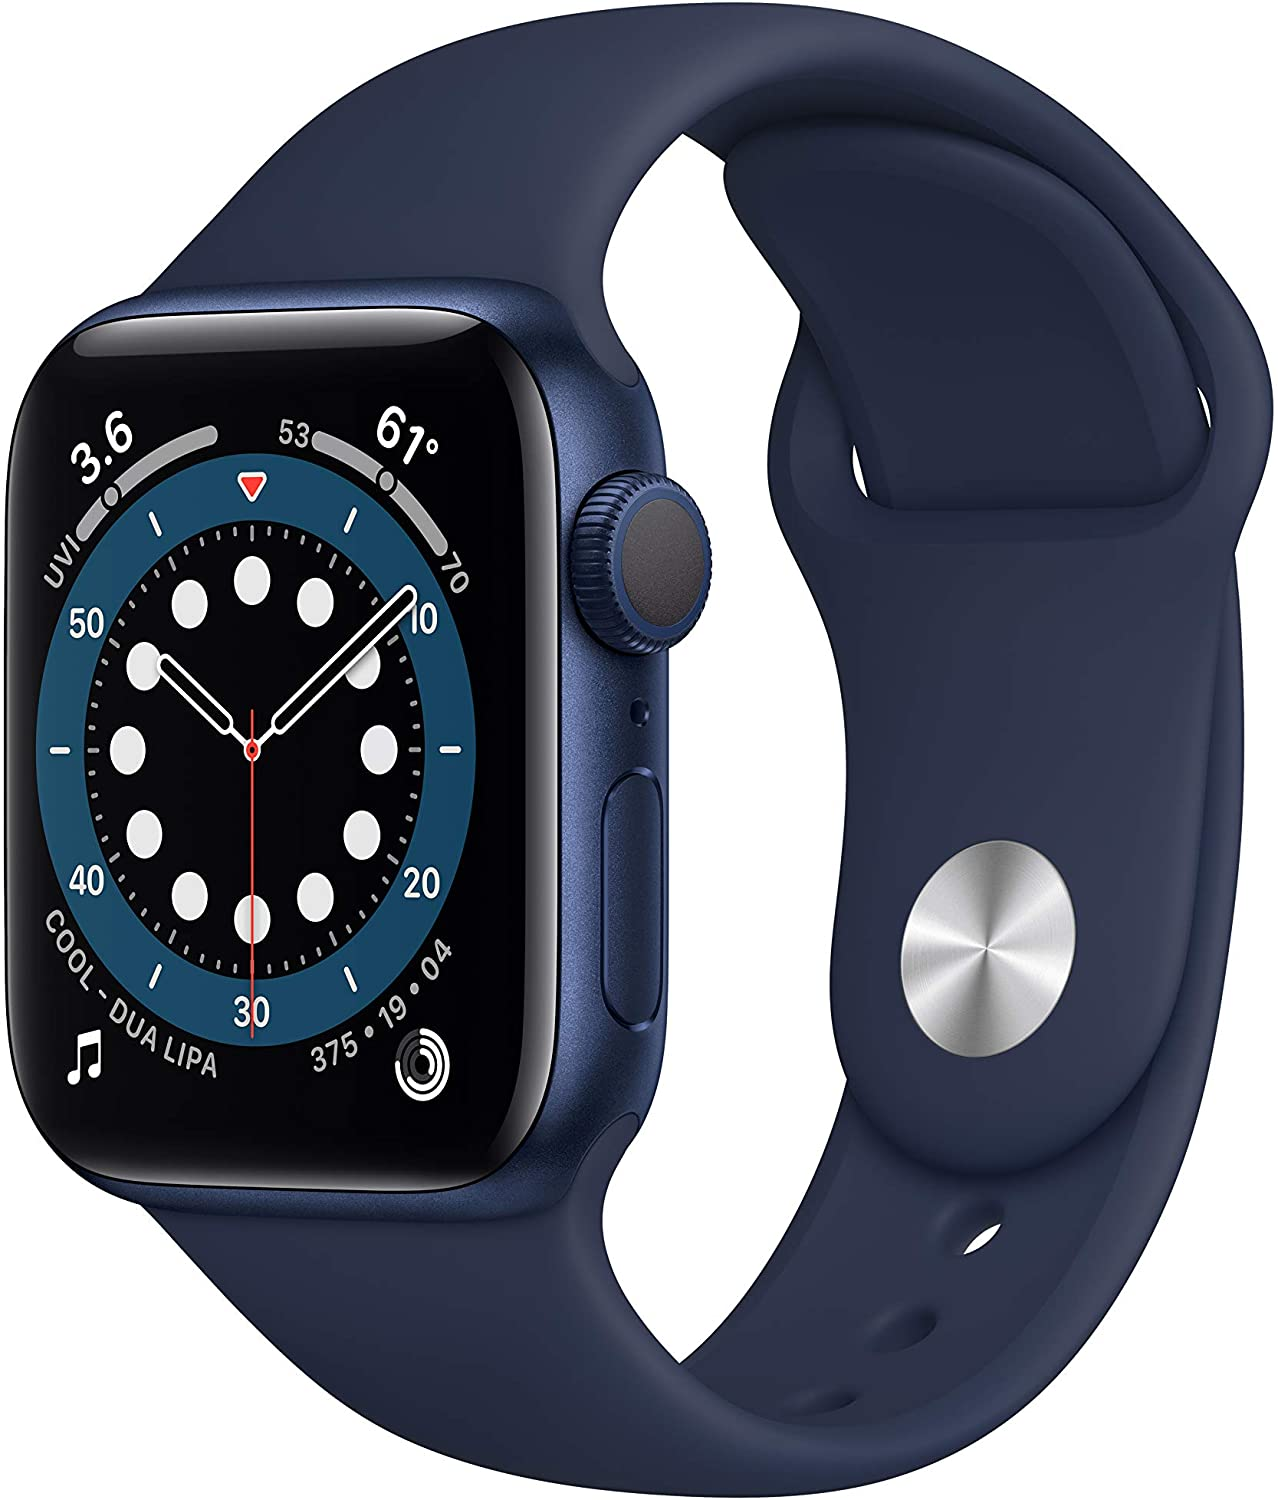 New AppleWatch Series 6 (GPS, 40mm) - Blue Aluminum Case with Deep Navy Sport Band